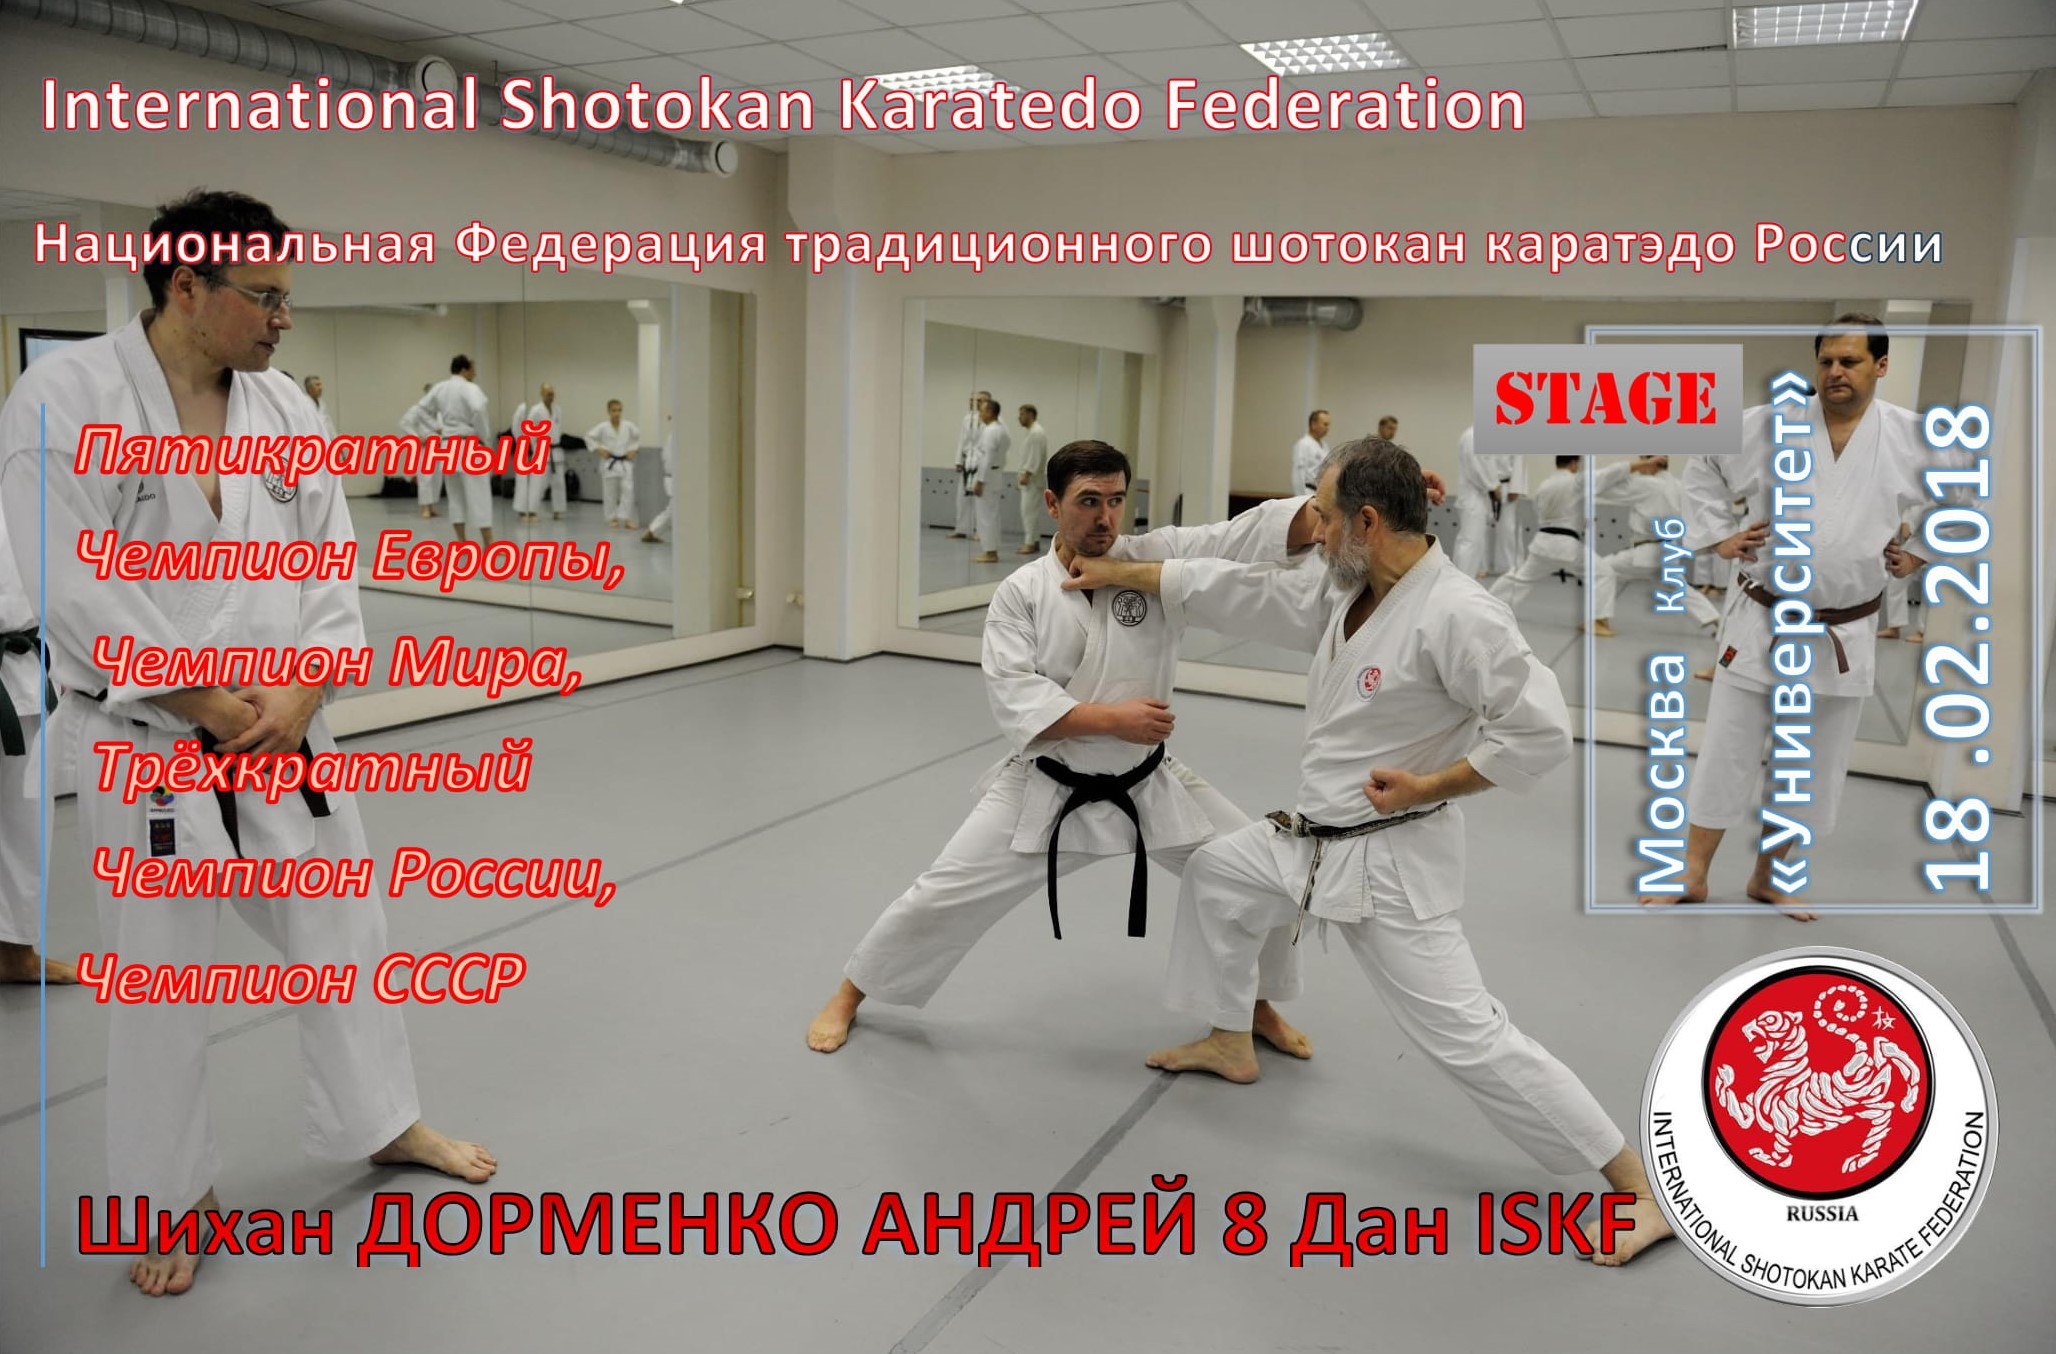 shotokan karate essay Over on my other weblog i've been asked what i found wrong with shotokan karate what i didn't like about shotokan karate from rob redmond's heresy essays.